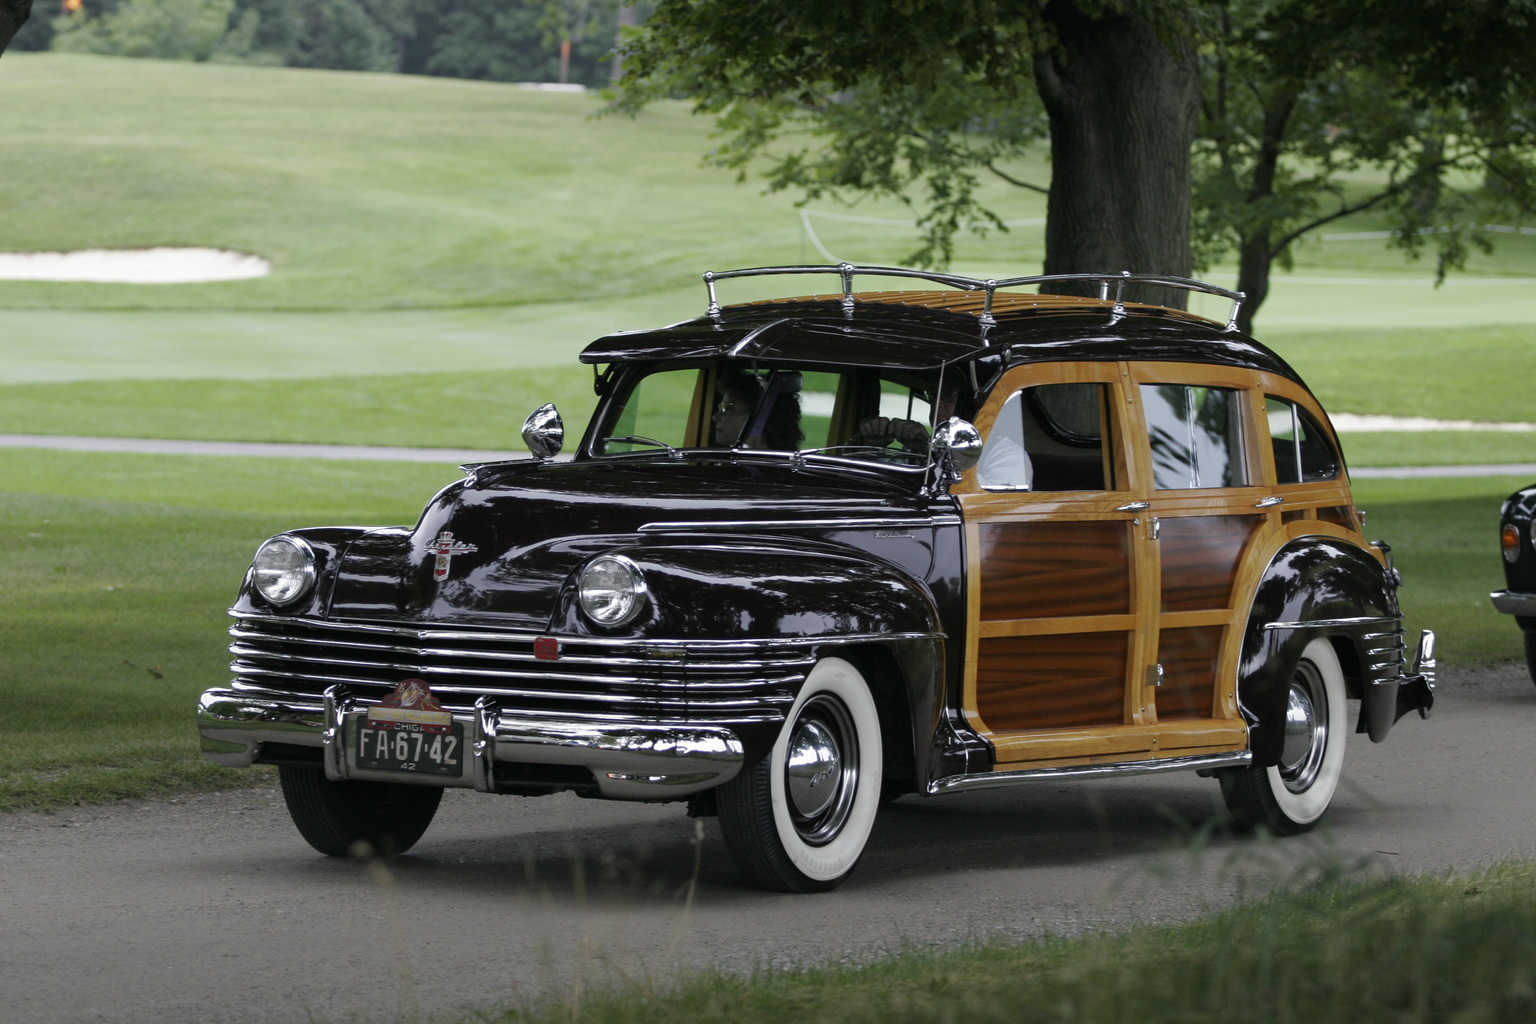 1942 Chrysler Town & Country 'Barrelback' Wagon